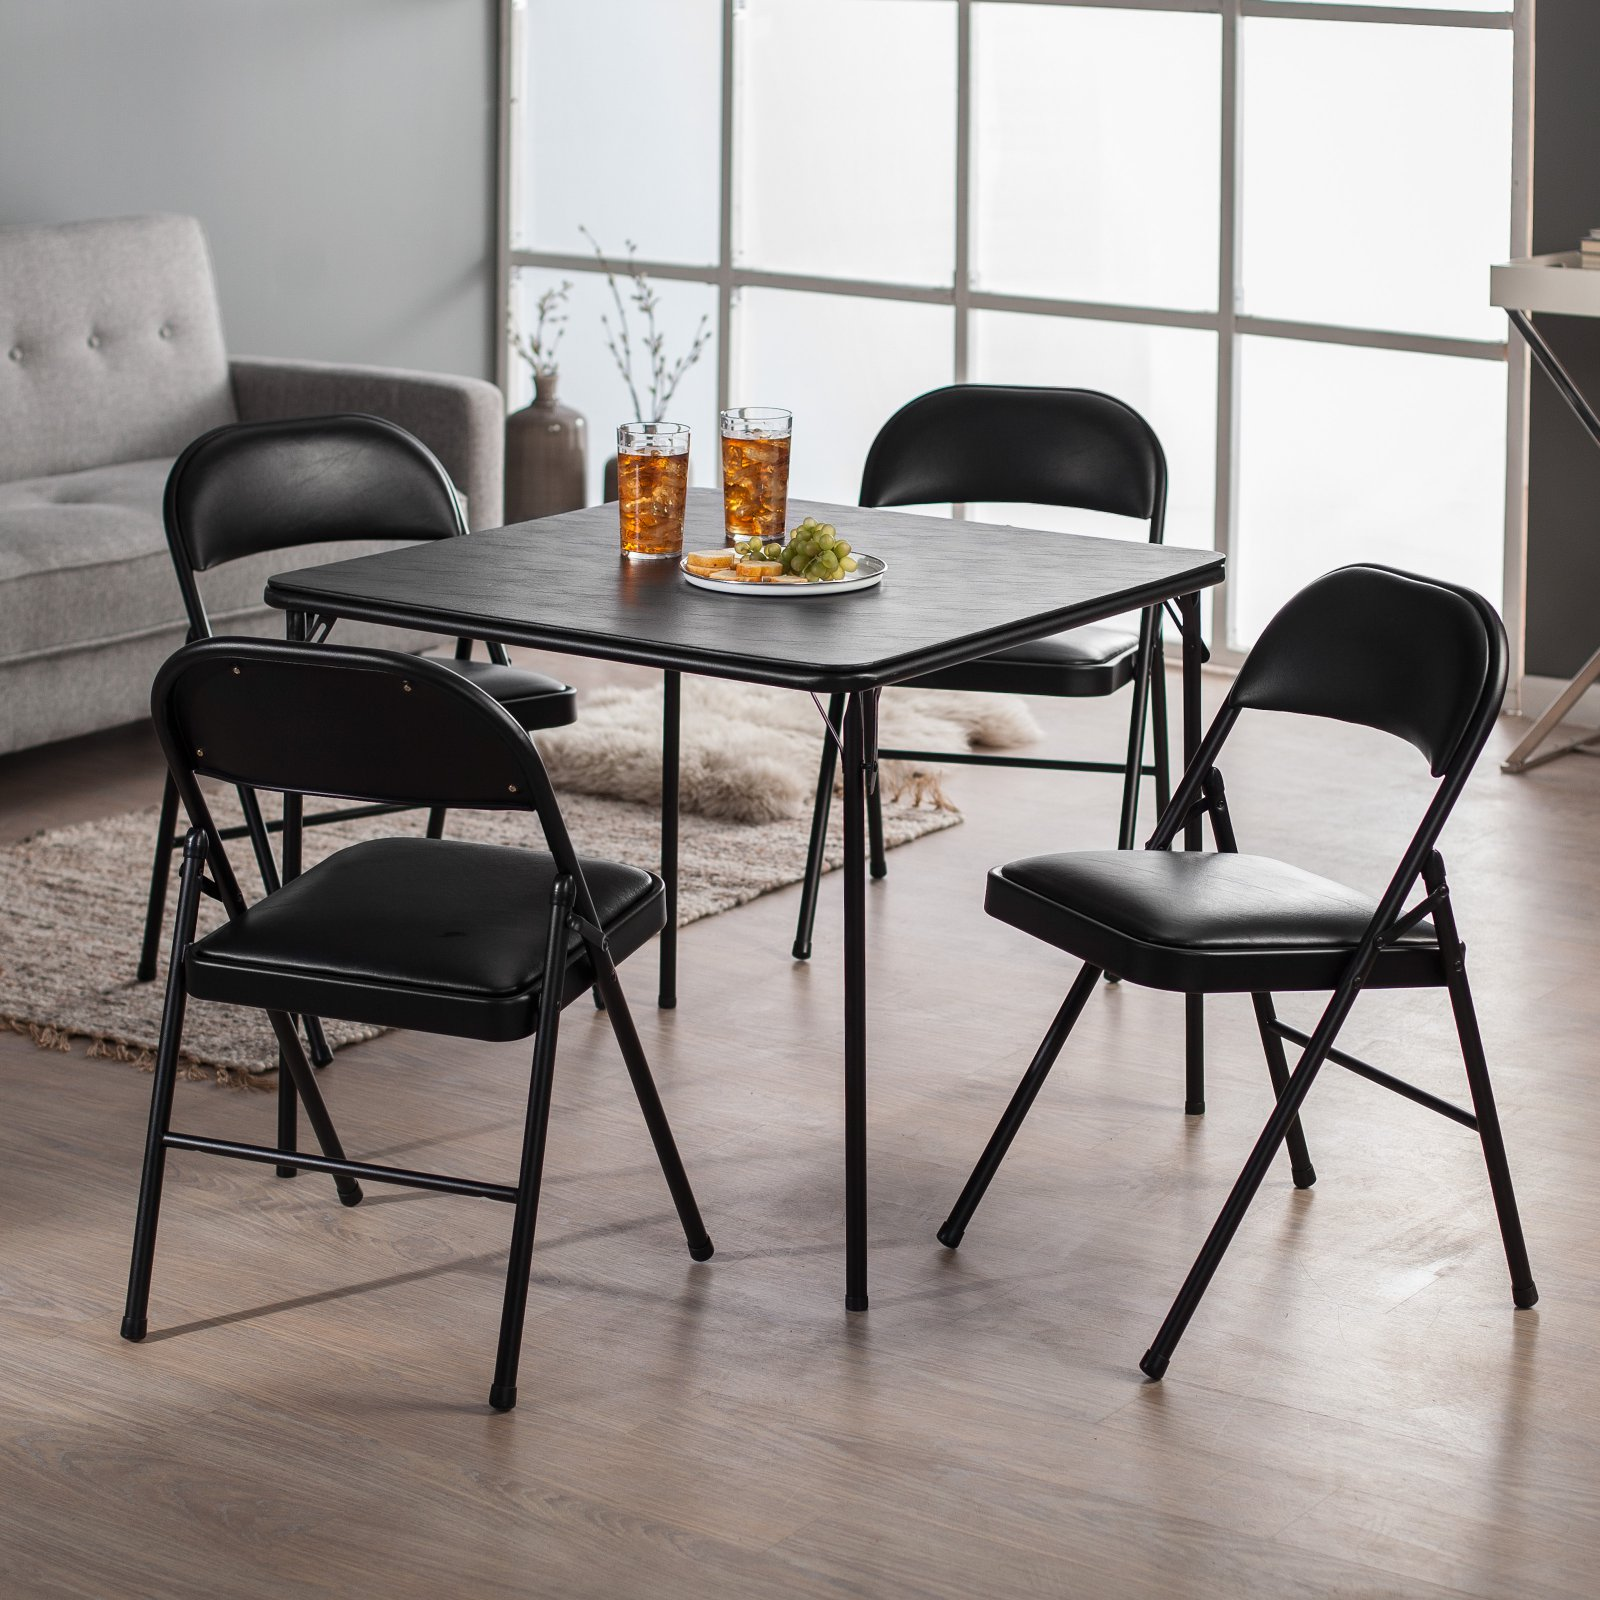 cosco card table and chairs recall recycled plastic adirondack chair tables walmart com product image meco sudden comfort deluxe double padded back 5 piece set